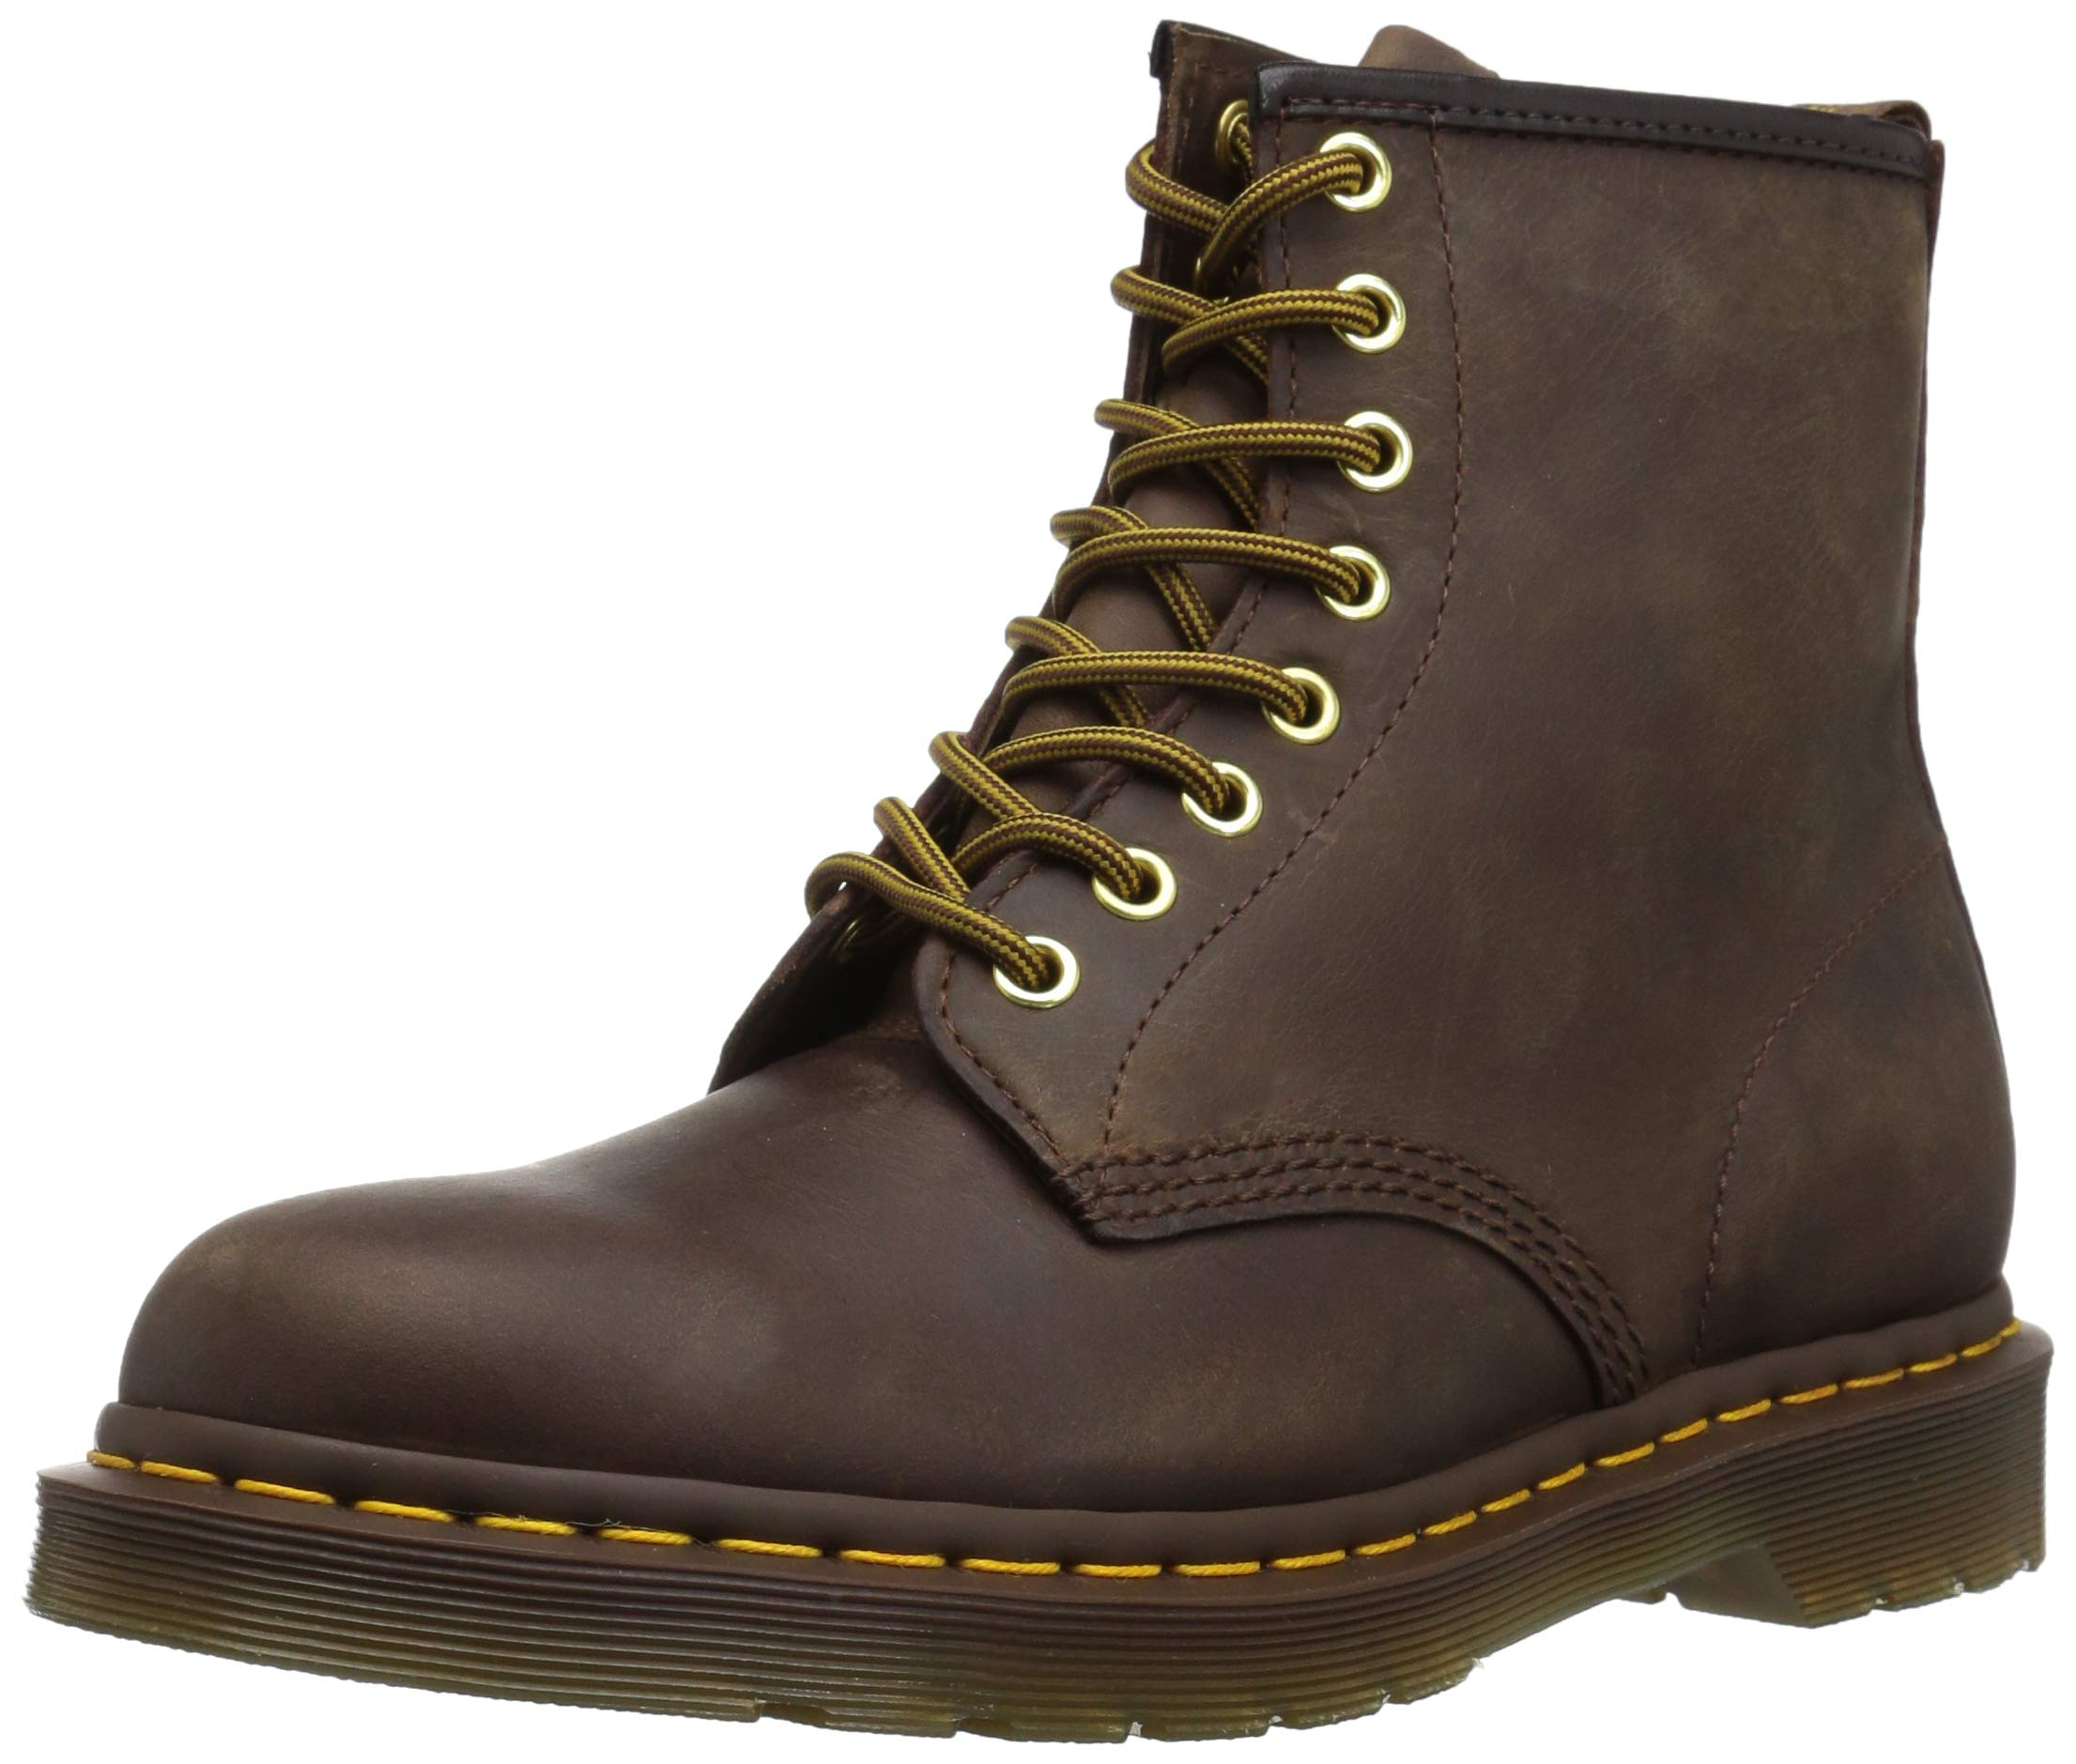 Dr. Martens Men's 1460 Re-Invented 8 Eye Lace Up Boot,Aztec Crazyhorse Leather,9 UK (10 M US Mens)